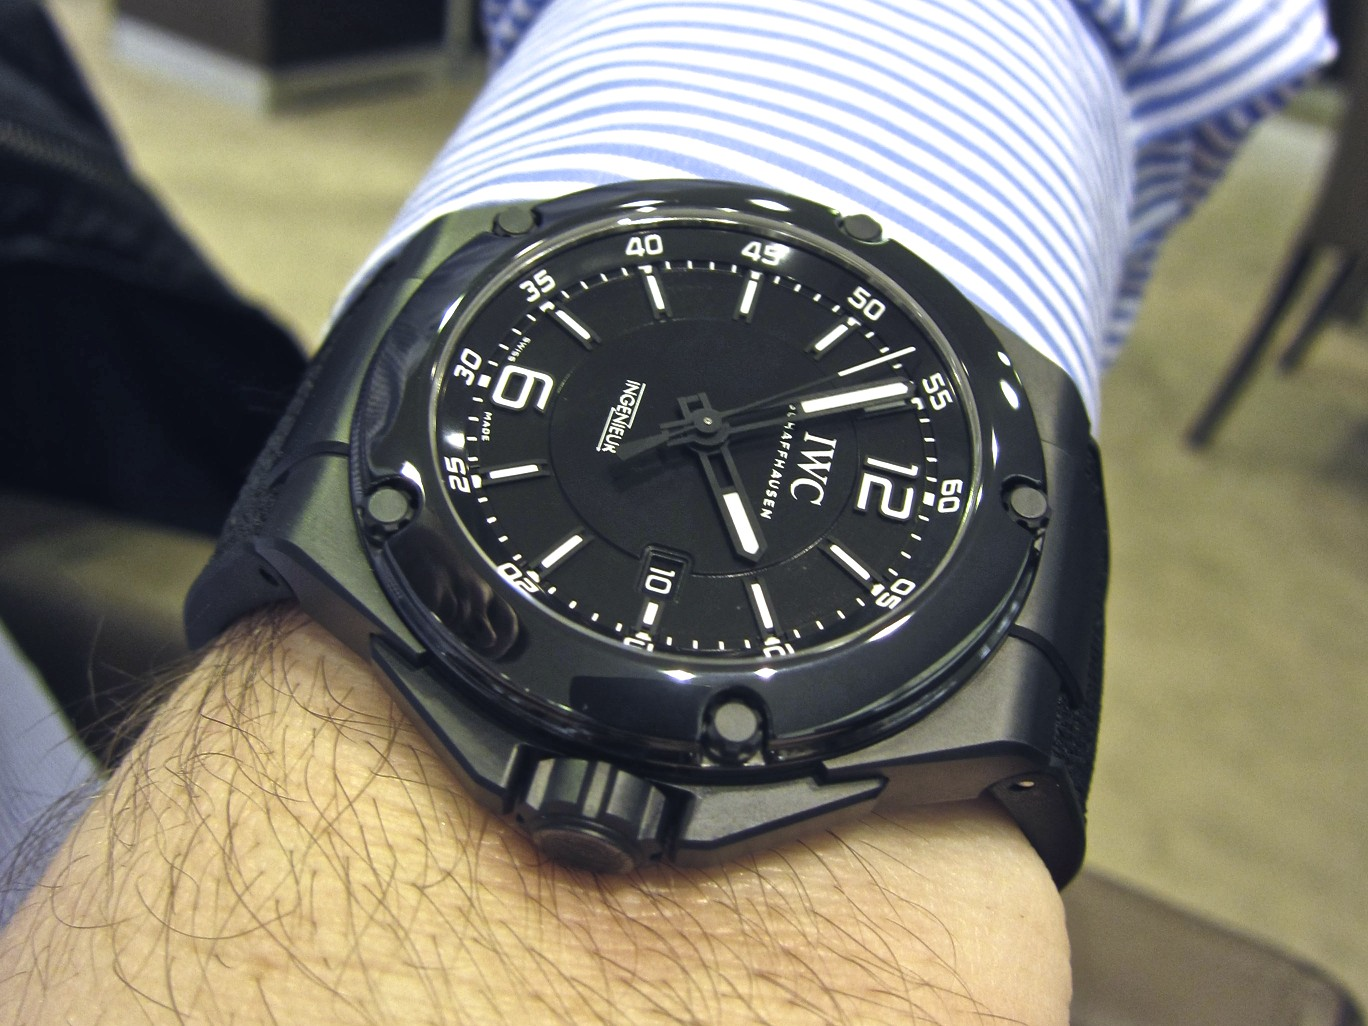 iwc ingenieur automatic amg ceramic black series edition. Black Bedroom Furniture Sets. Home Design Ideas